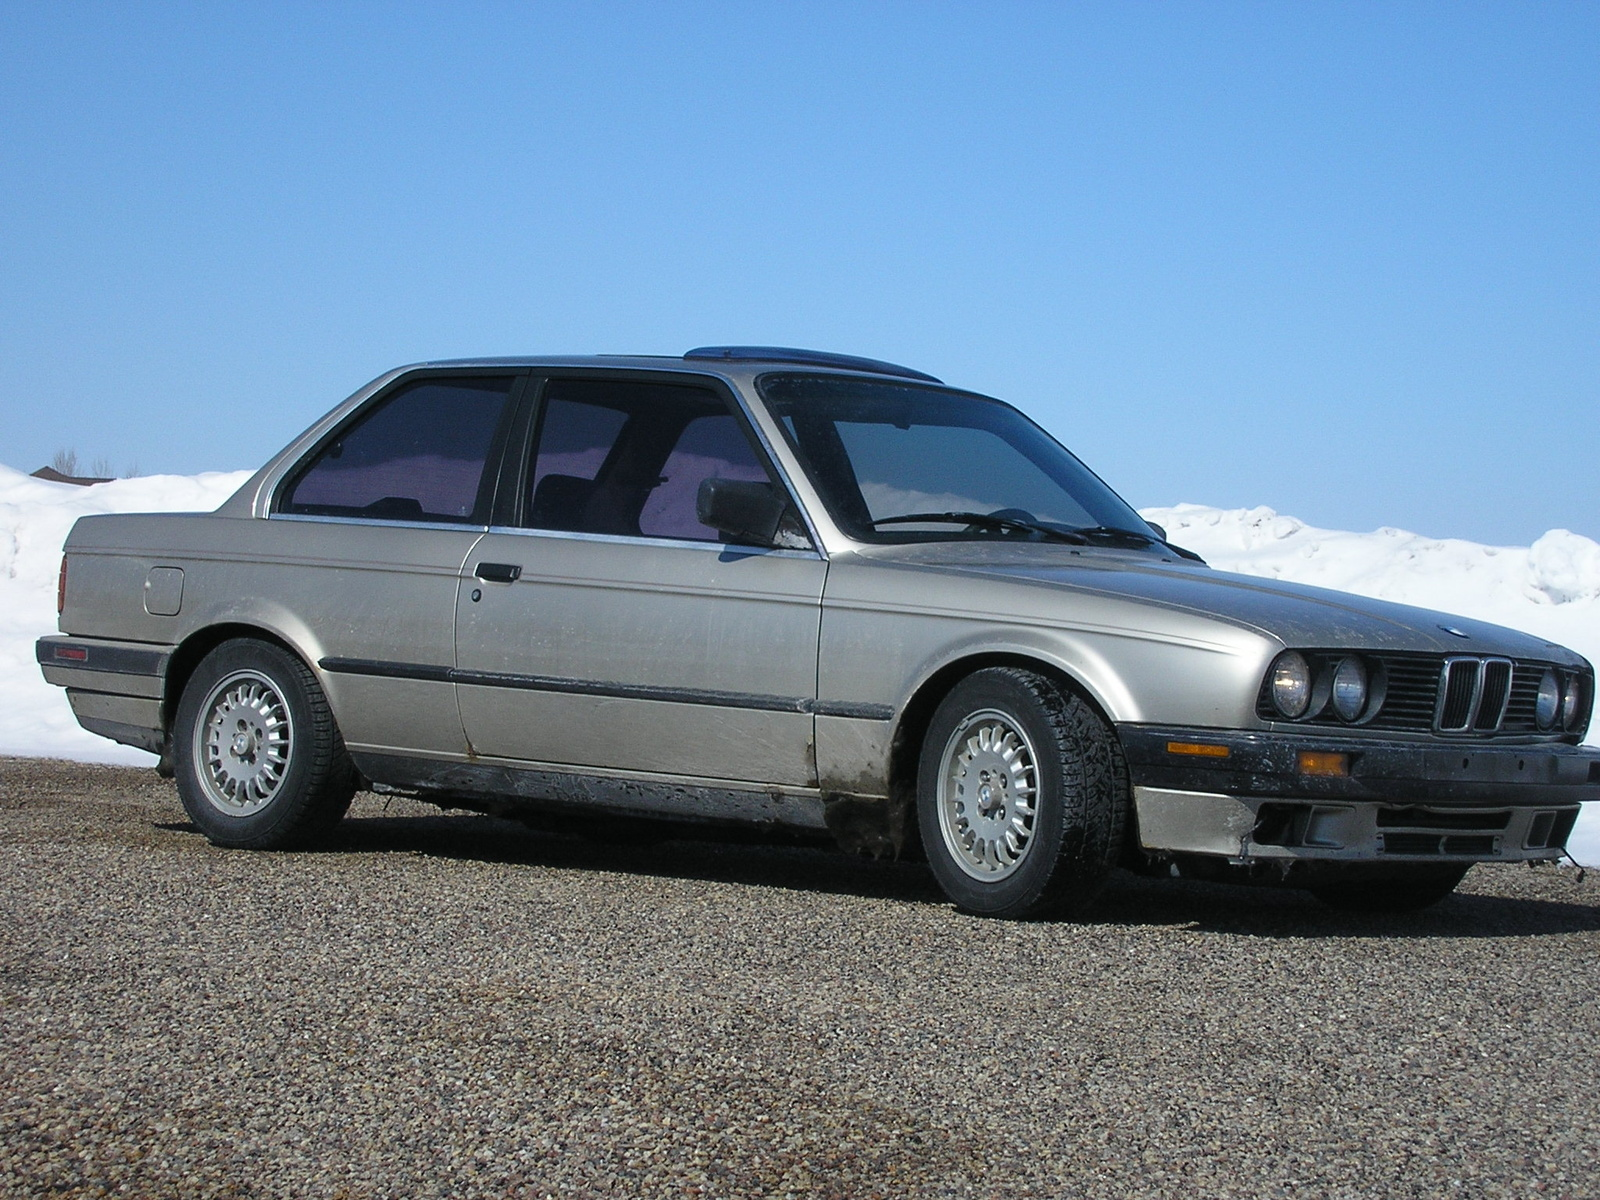 BMW 3 series 324td 1989 photo - 7